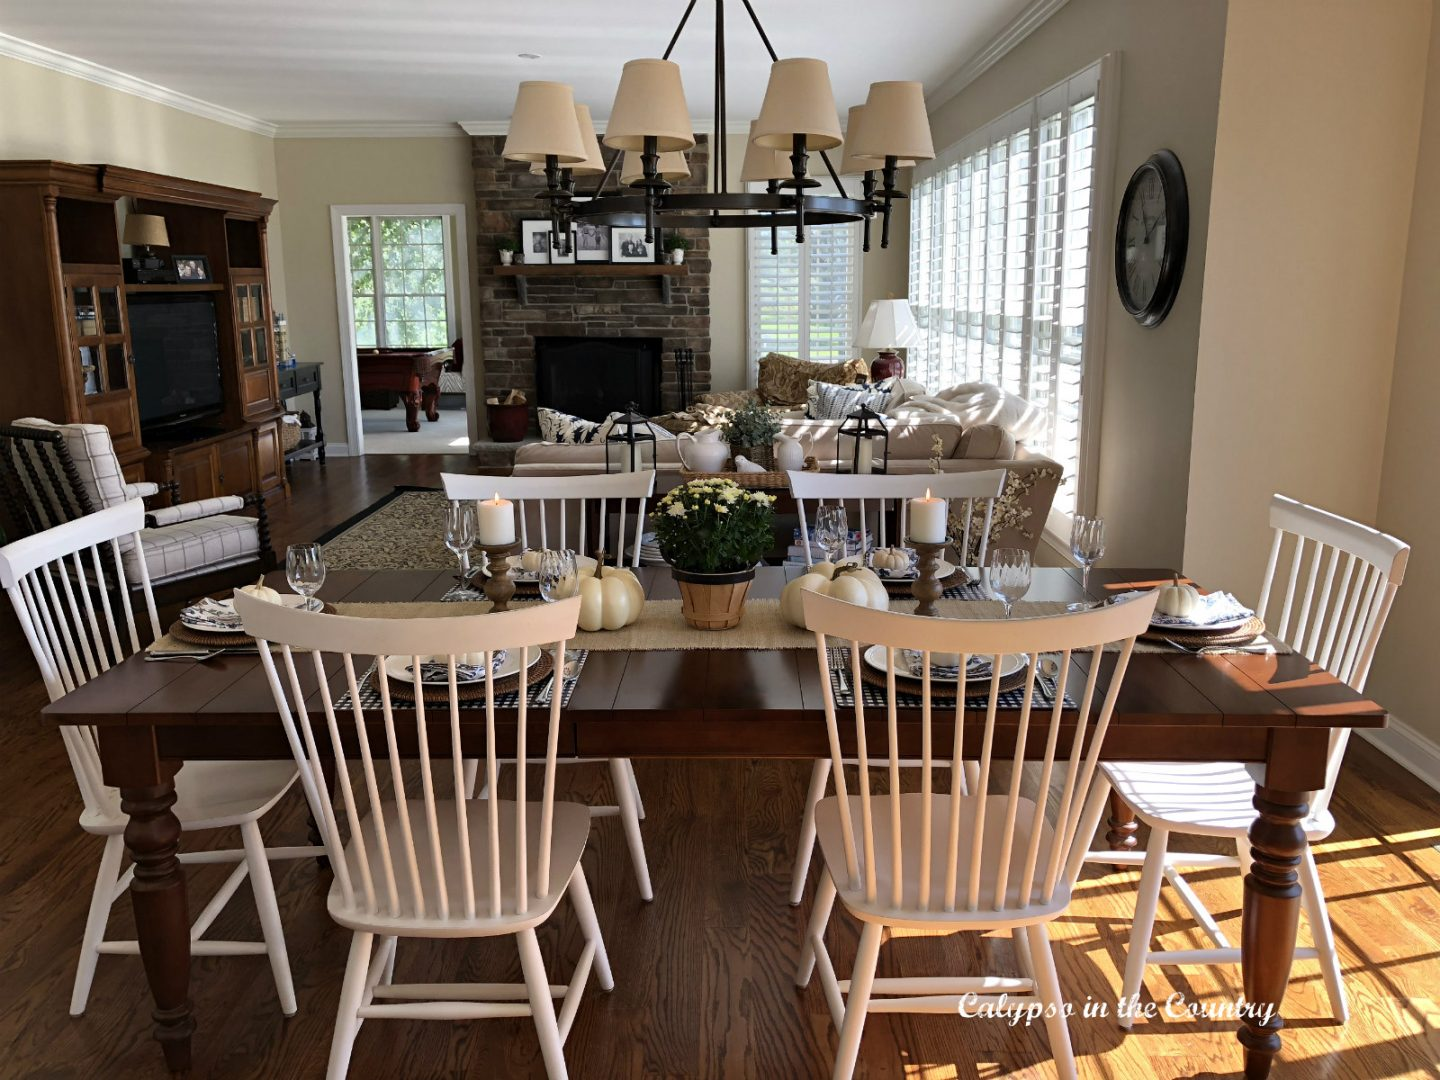 Farmhouse Style Kitchen Table Decorated for Fall